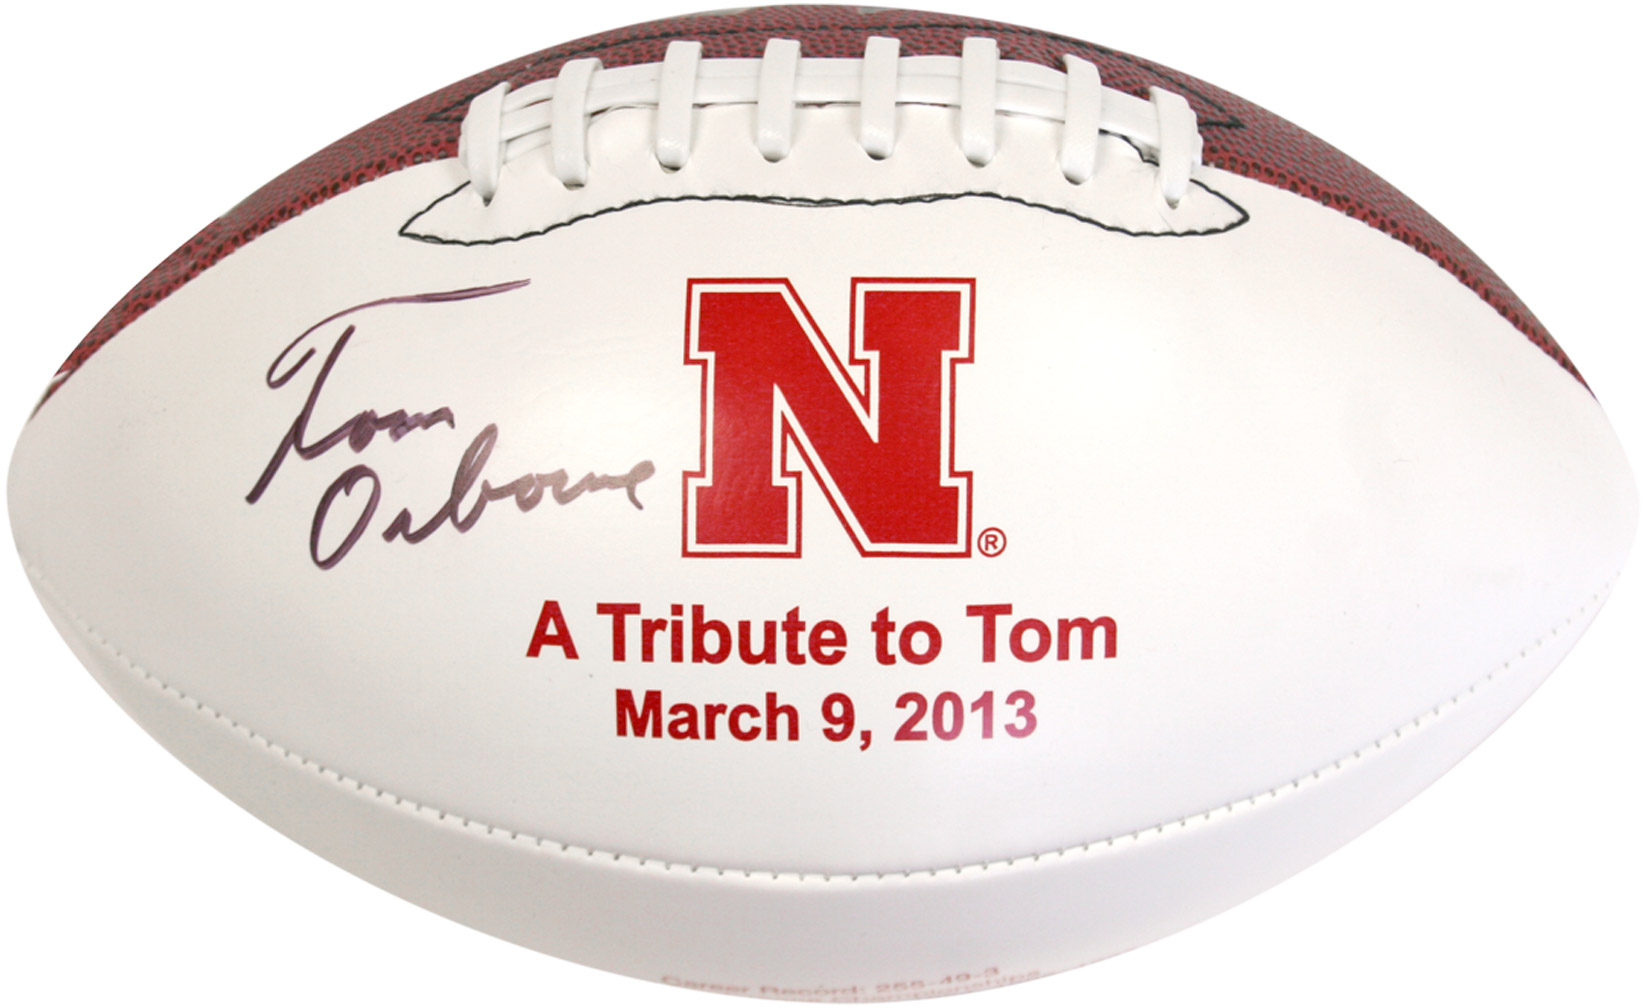 Tom Osborne Tribute Football Nebraska Cornhuskers, husker football, nebraska cornhuskers merchandise, husker merchandise, nebraska merchandise, husker memorabilia, husker autographed, nebraska cornhuskers autographed, Tom Osborne autographed, Tom Osborne signed, Tom Osborne collectible, Tom Osborne, nebraska cornhuskers memorabilia, nebraska cornhuskers collectible, Tom Osborne Tribute Football